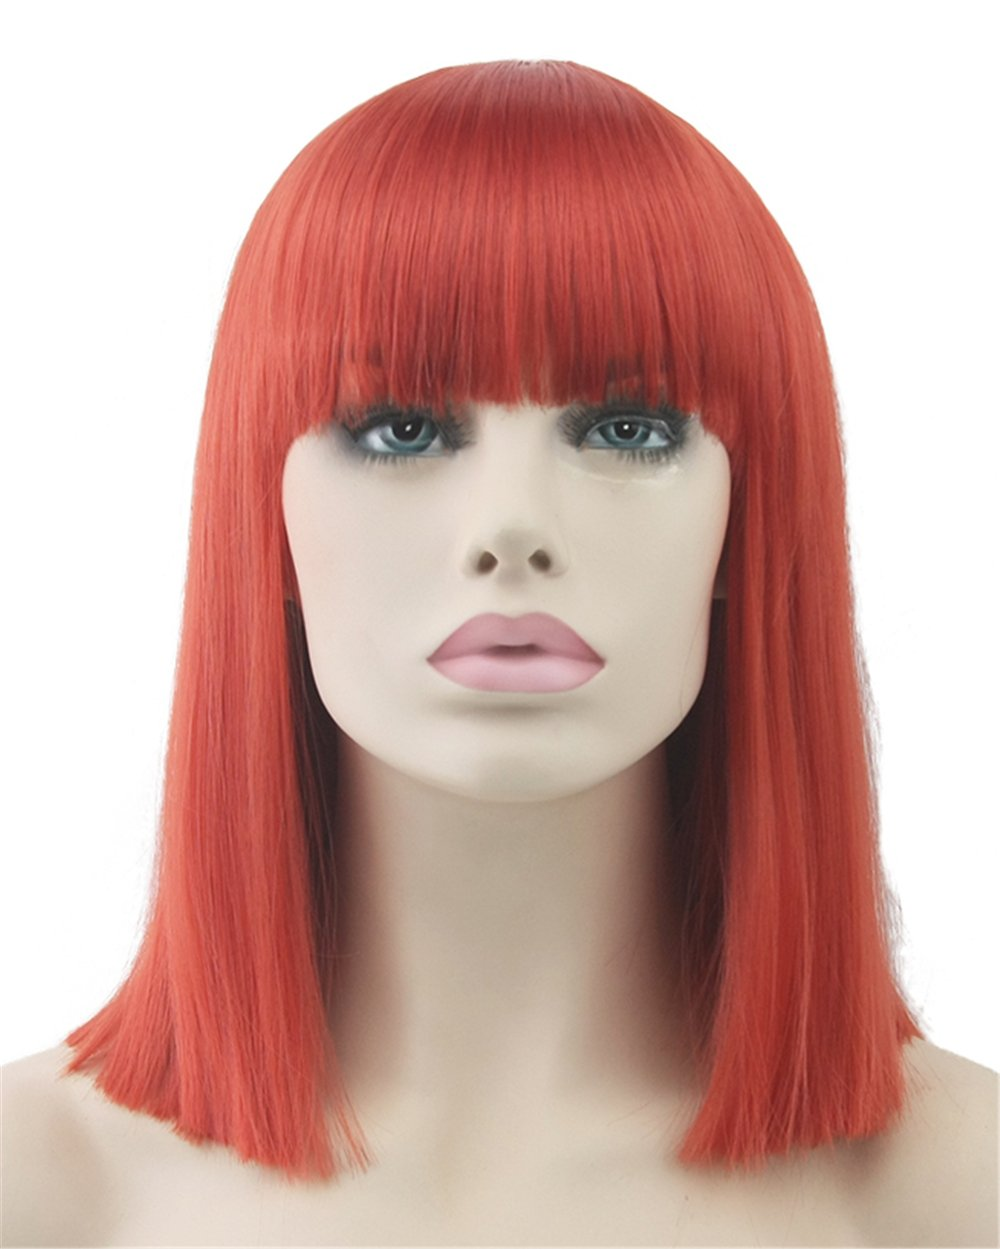 USIX 13.5'' / 35cm Synthetic Fiber Straight Bob Hair with Bangs Cosplay Wig (Red)